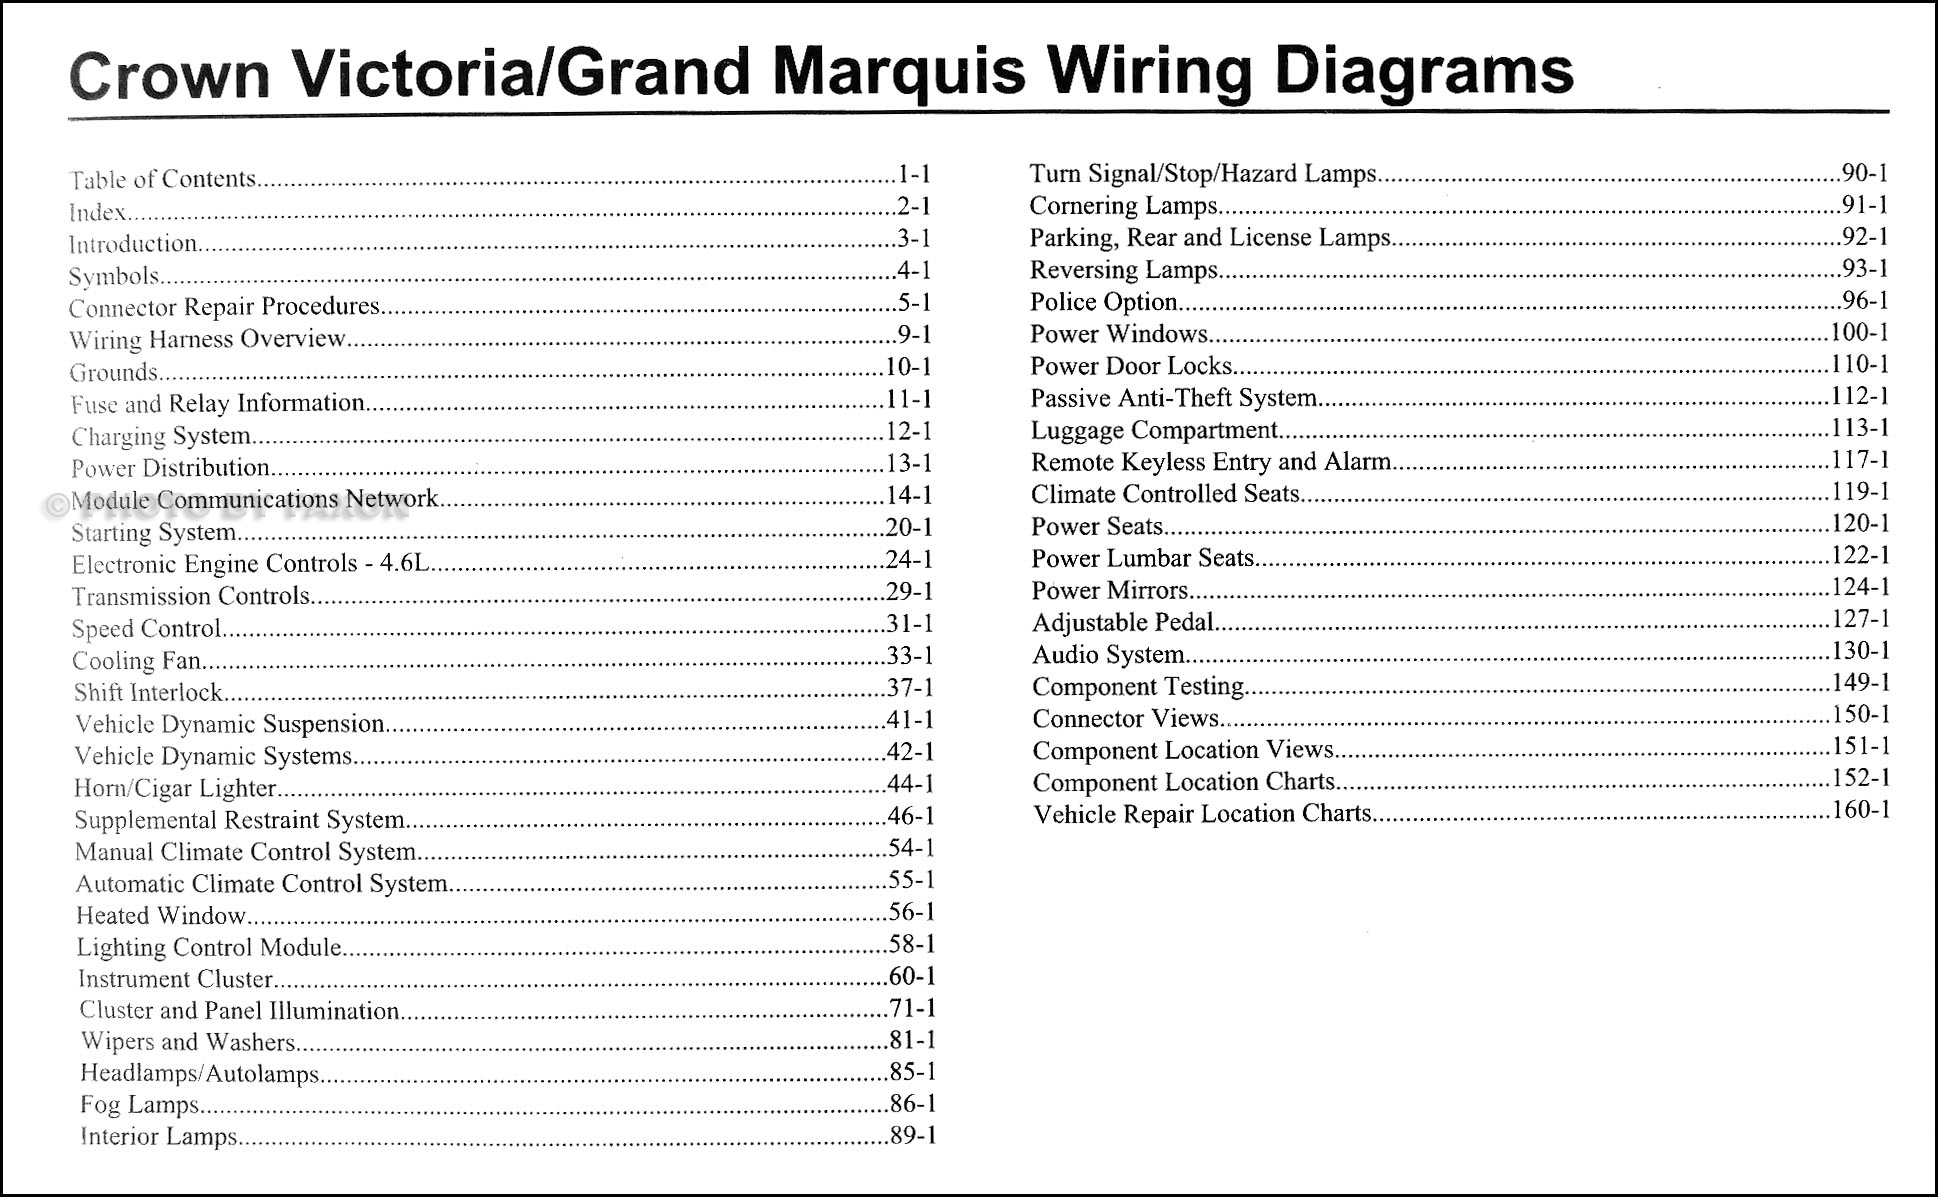 2009FordCrownVictoriaOWD TOC 2009 crown victoria & grand marquis original wiring diagram manual 1994 mercury grand marquis fuse box diagram at edmiracle.co